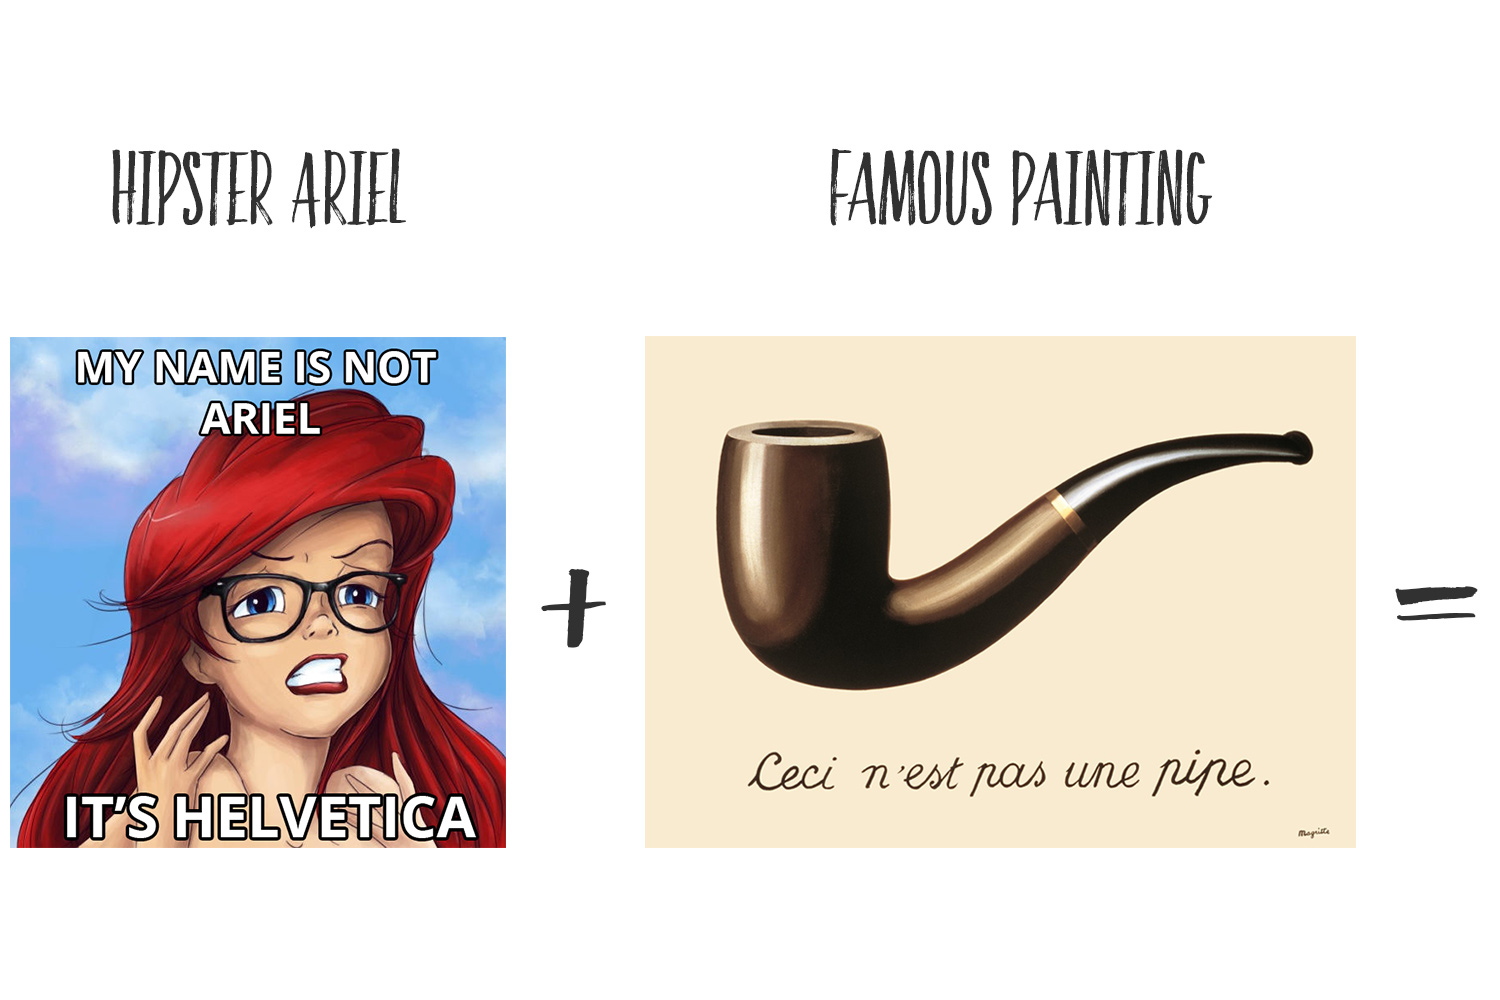 hipster ariel meme with renée magritte's pipe painting